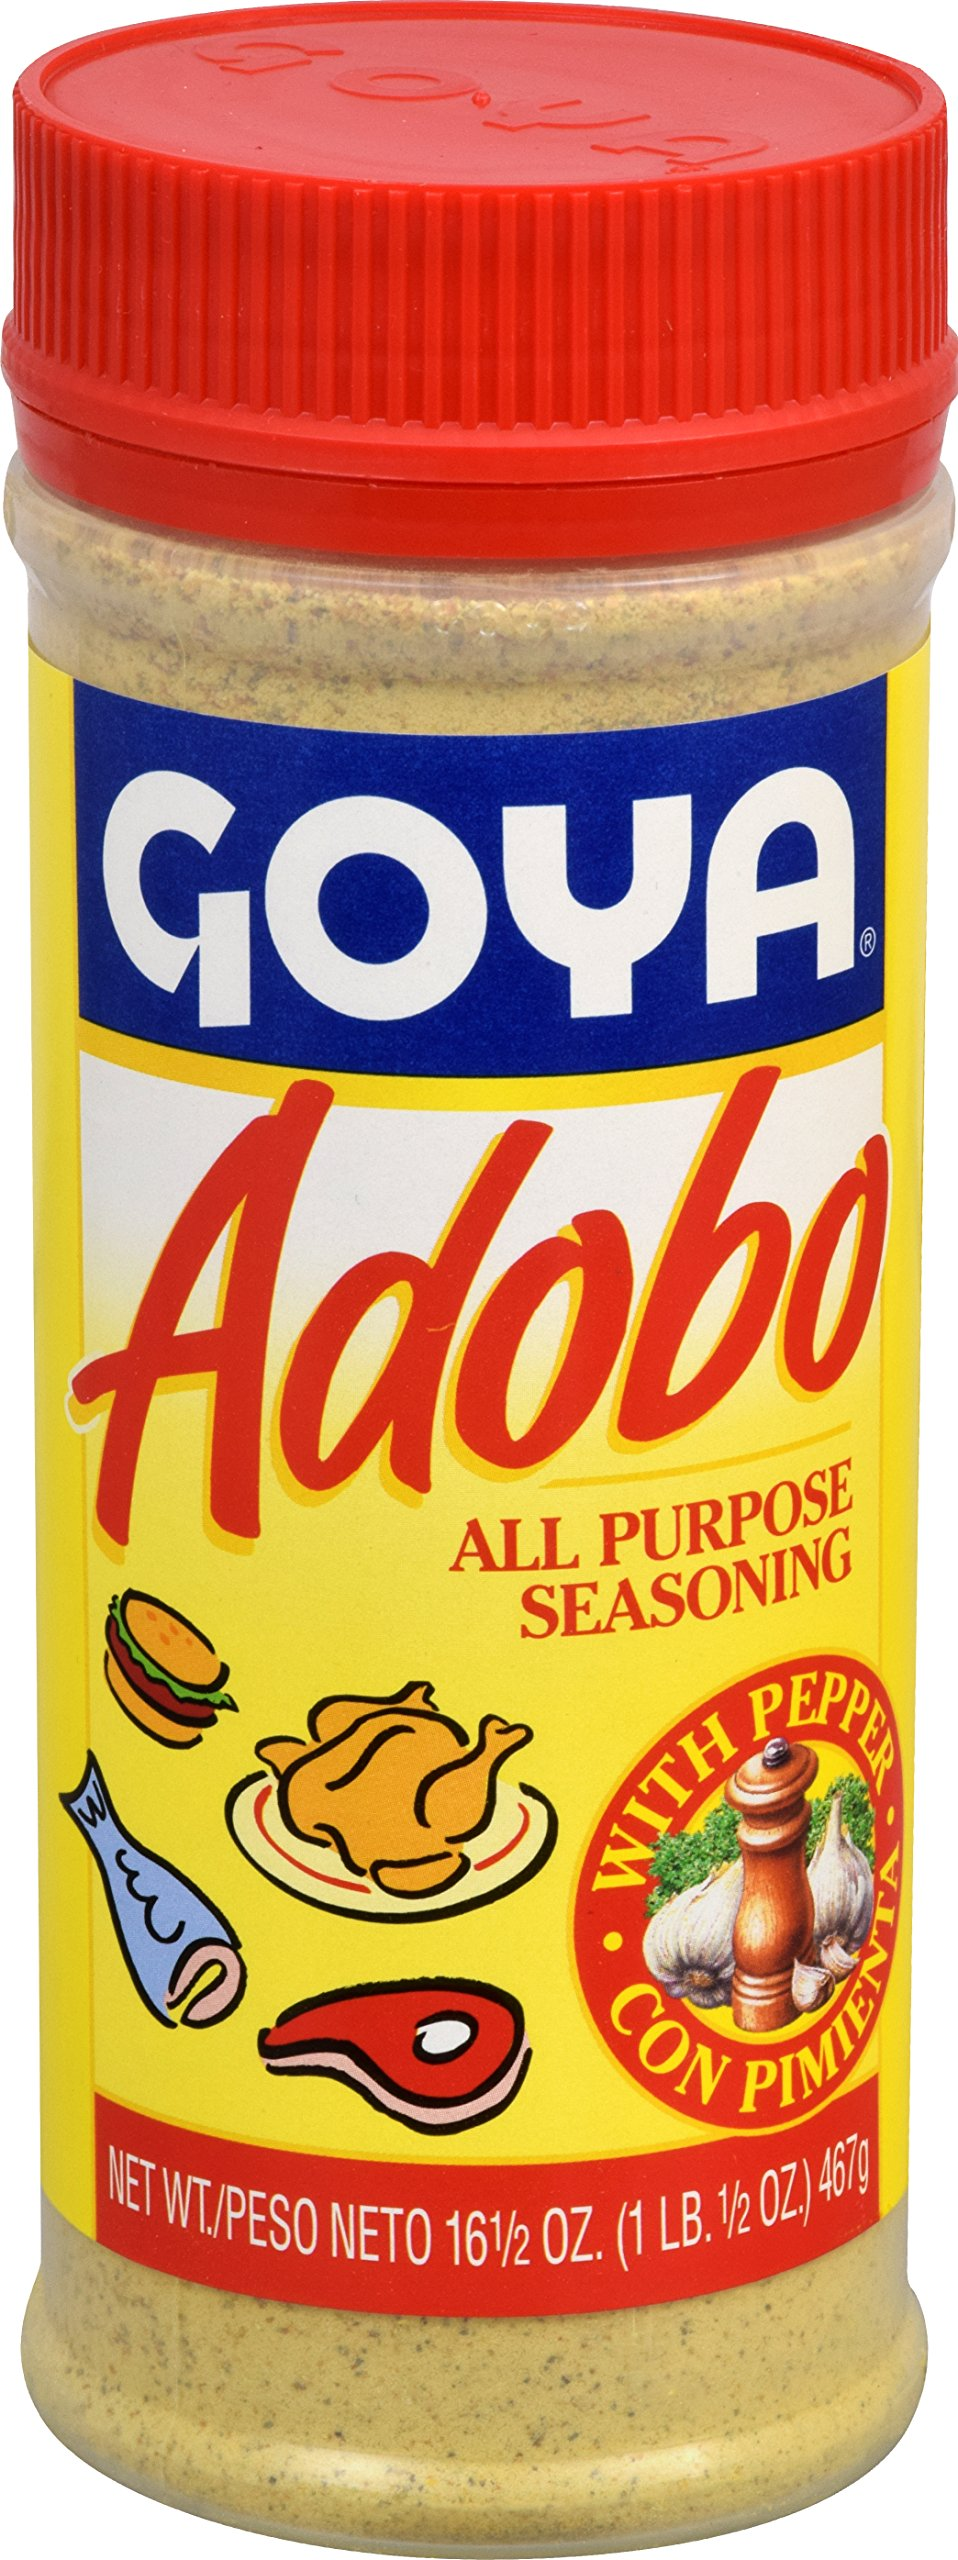 Goya Foods Adobo with Pepper, 16.5-Ounce (Pack of 24)